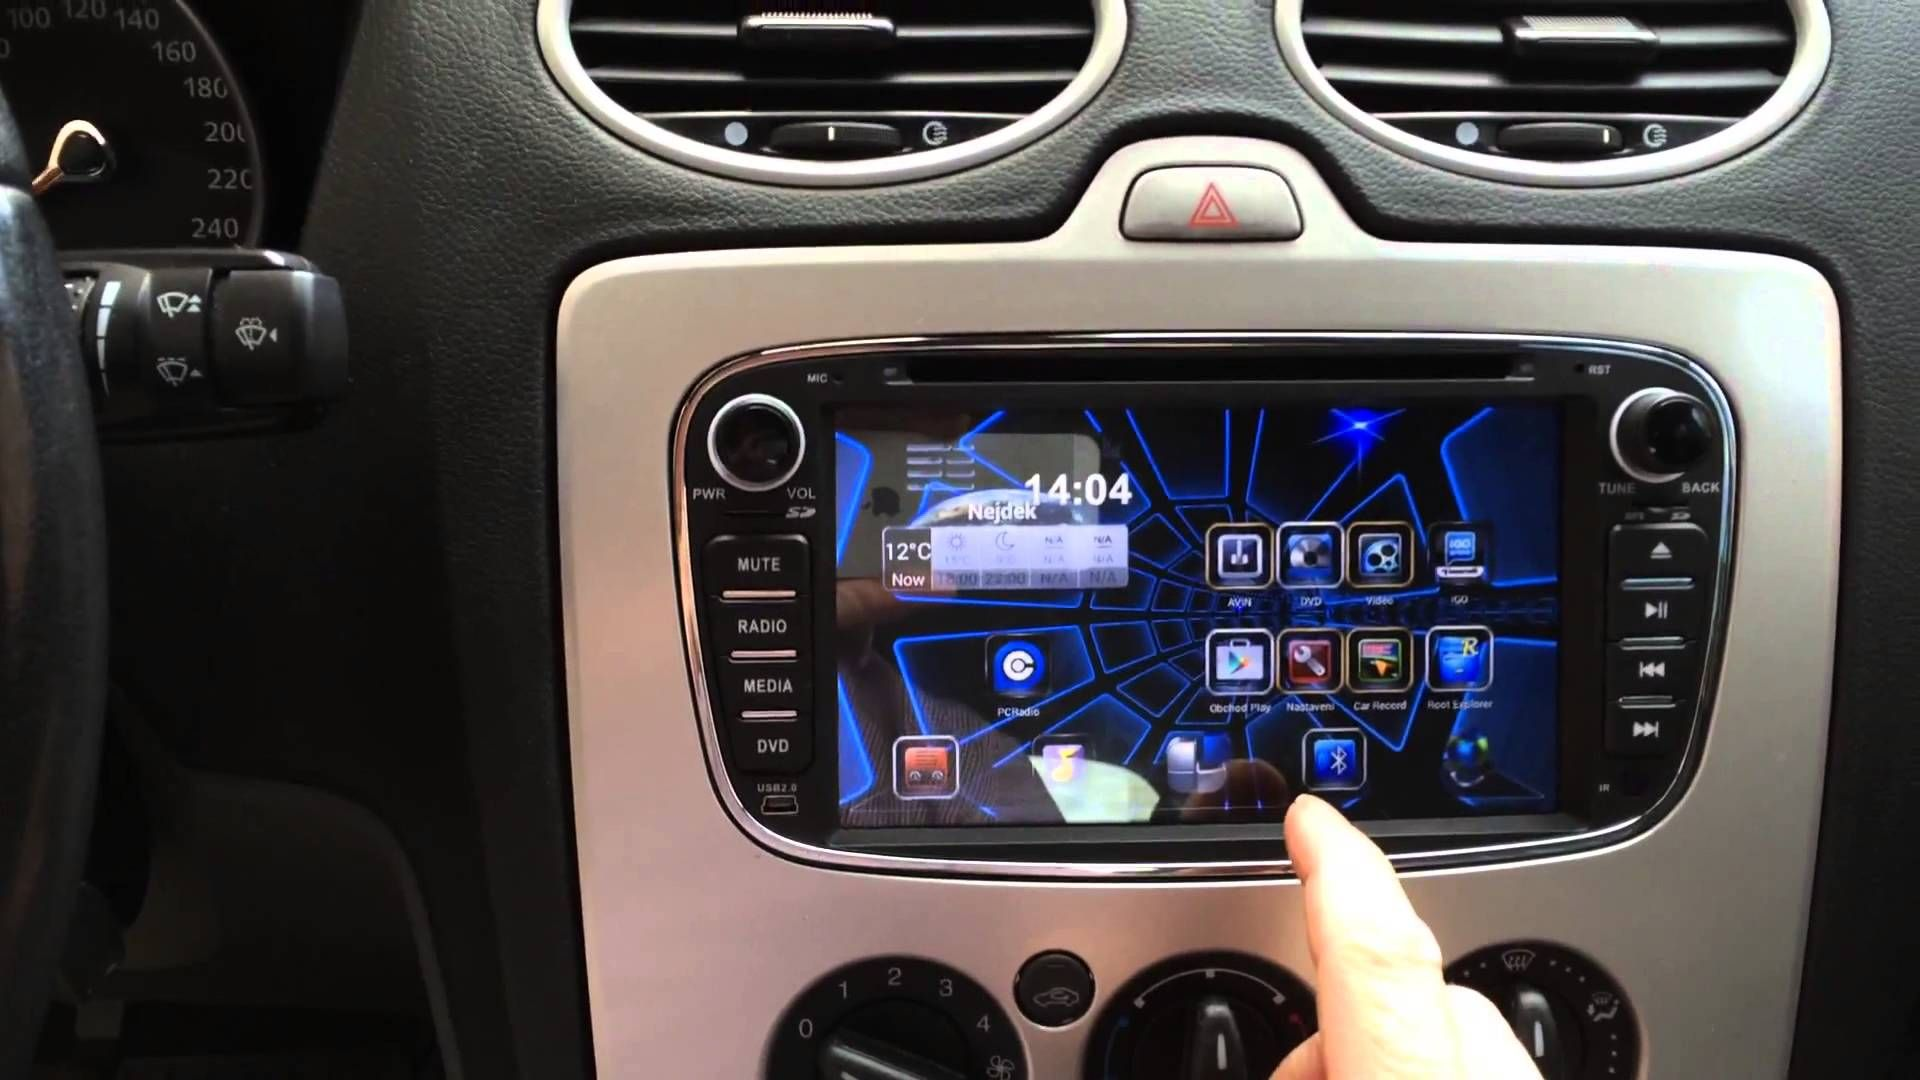 Rooted Joying android head unit car stereo ford focus mondeo